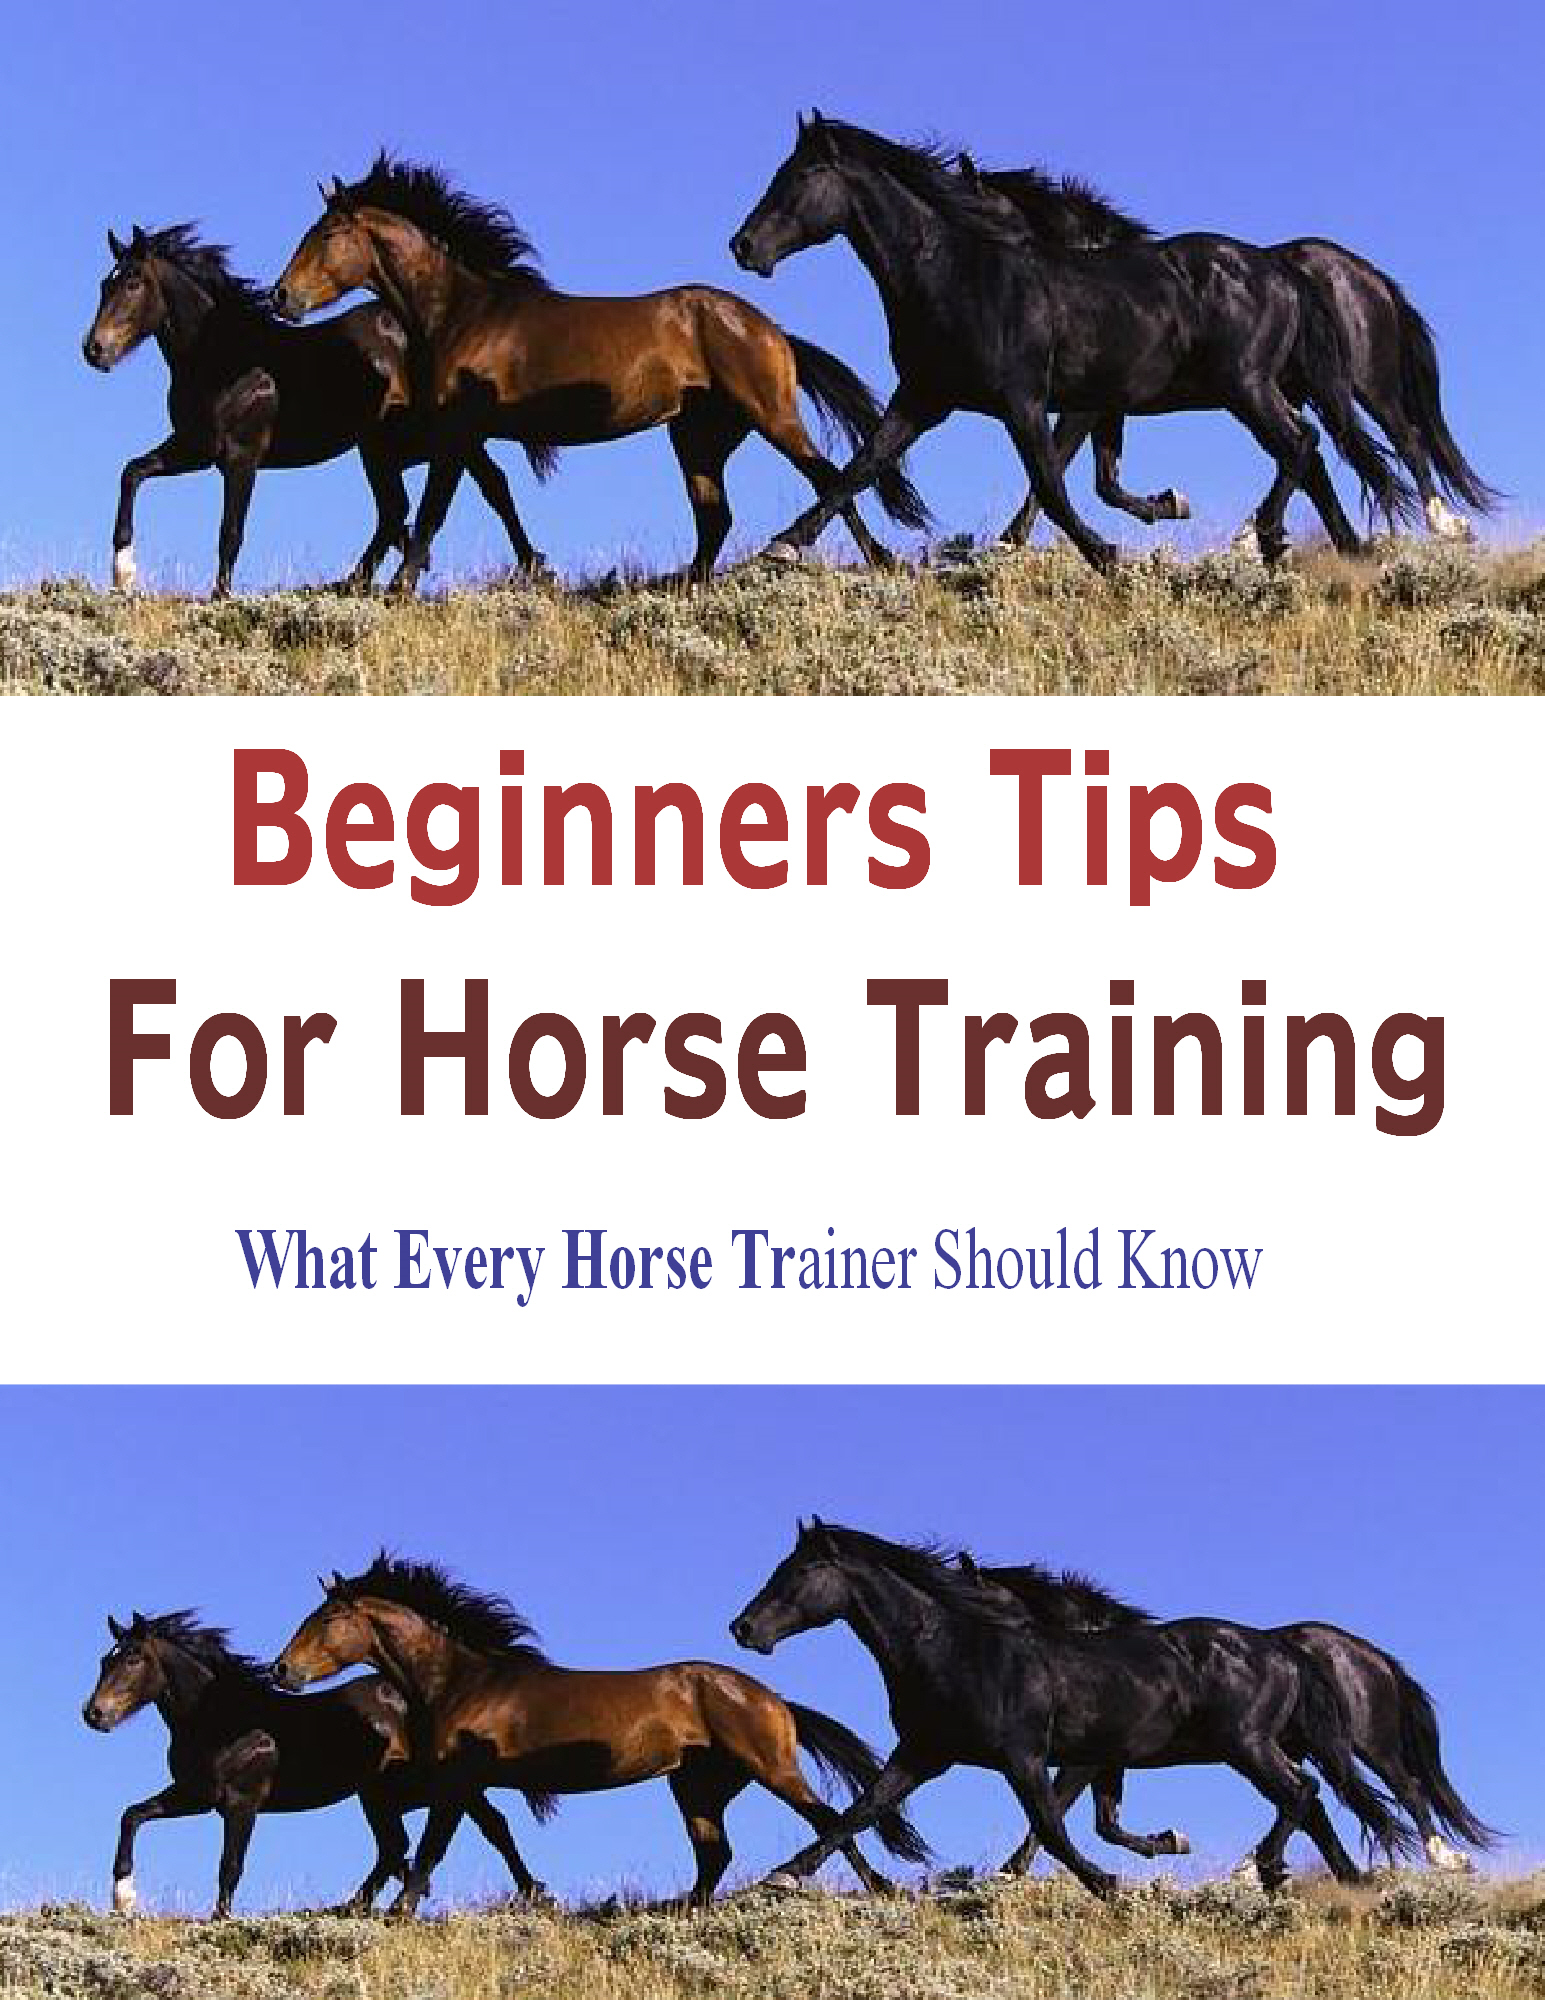 Beginners Tips for Horse Training